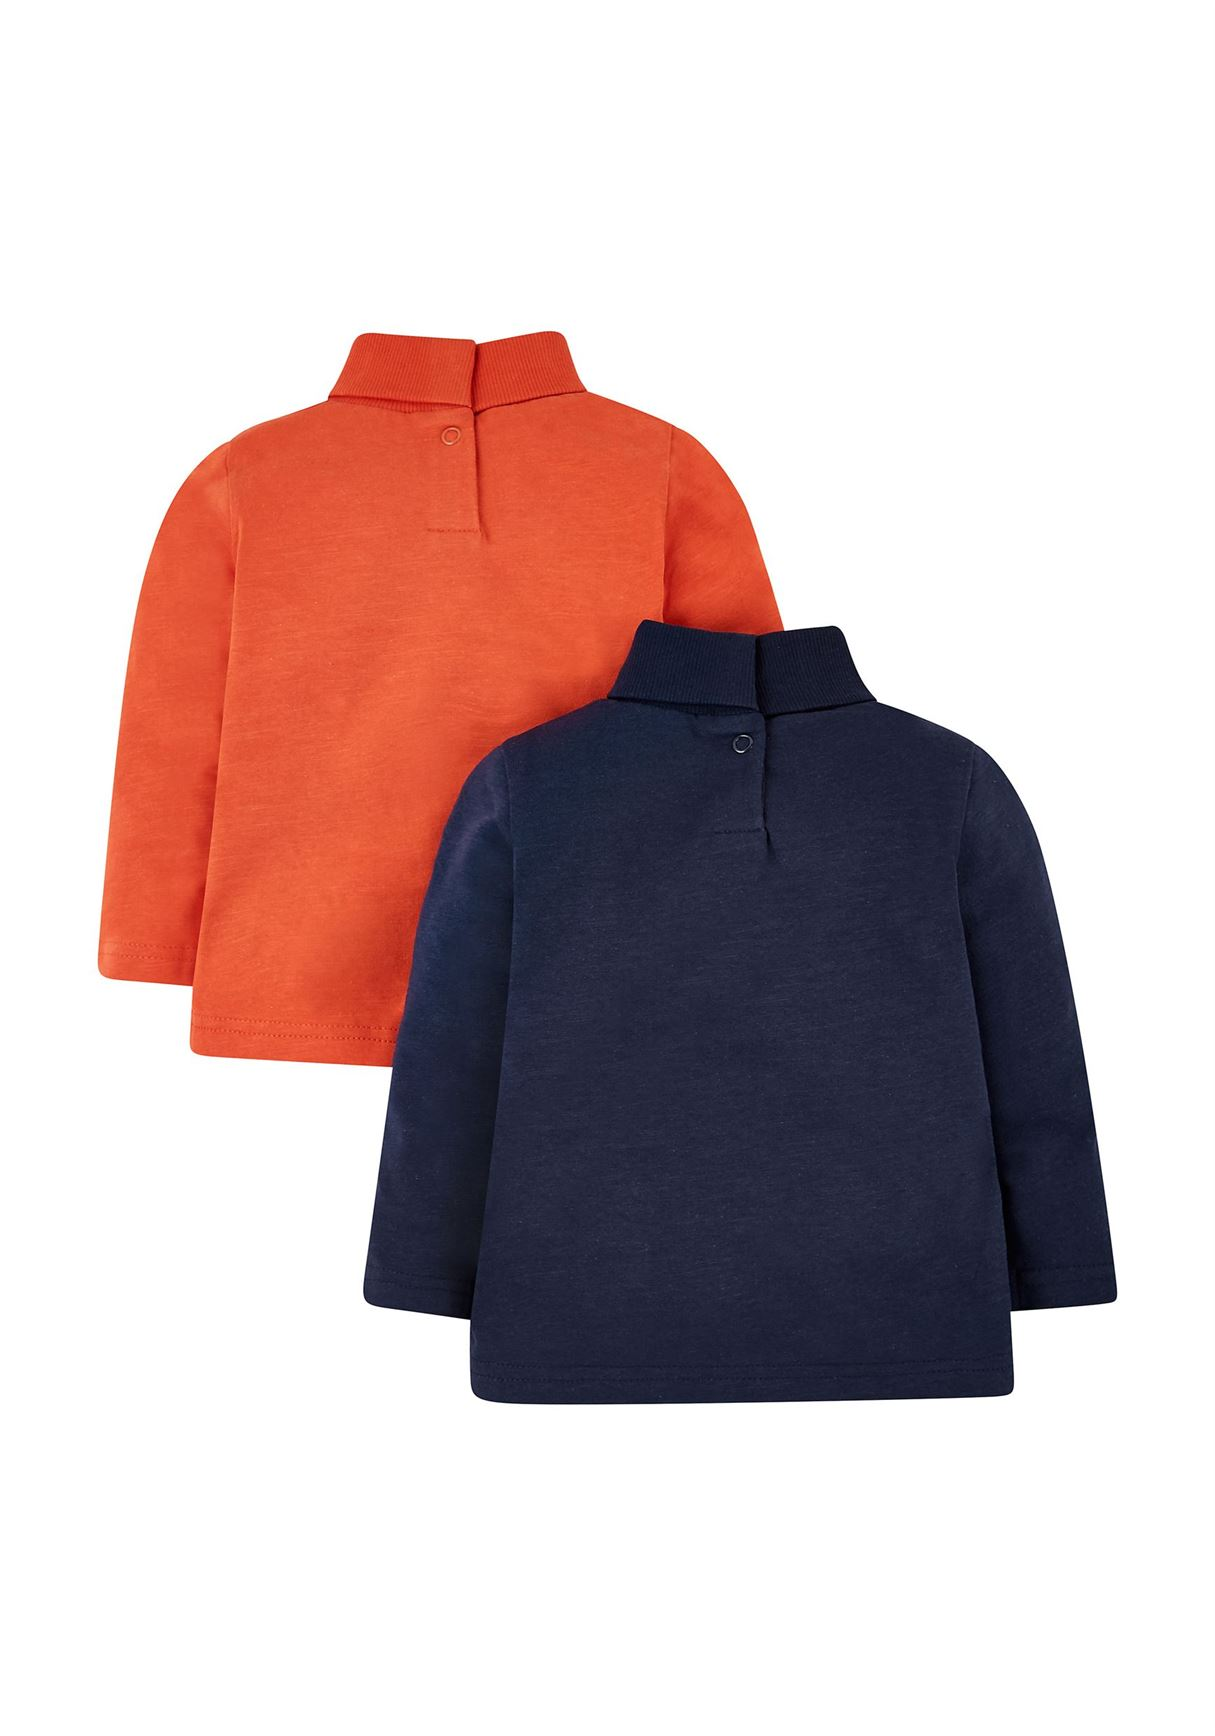 Mothercare Boys Assorted Printed Pack of 2 Pullovers